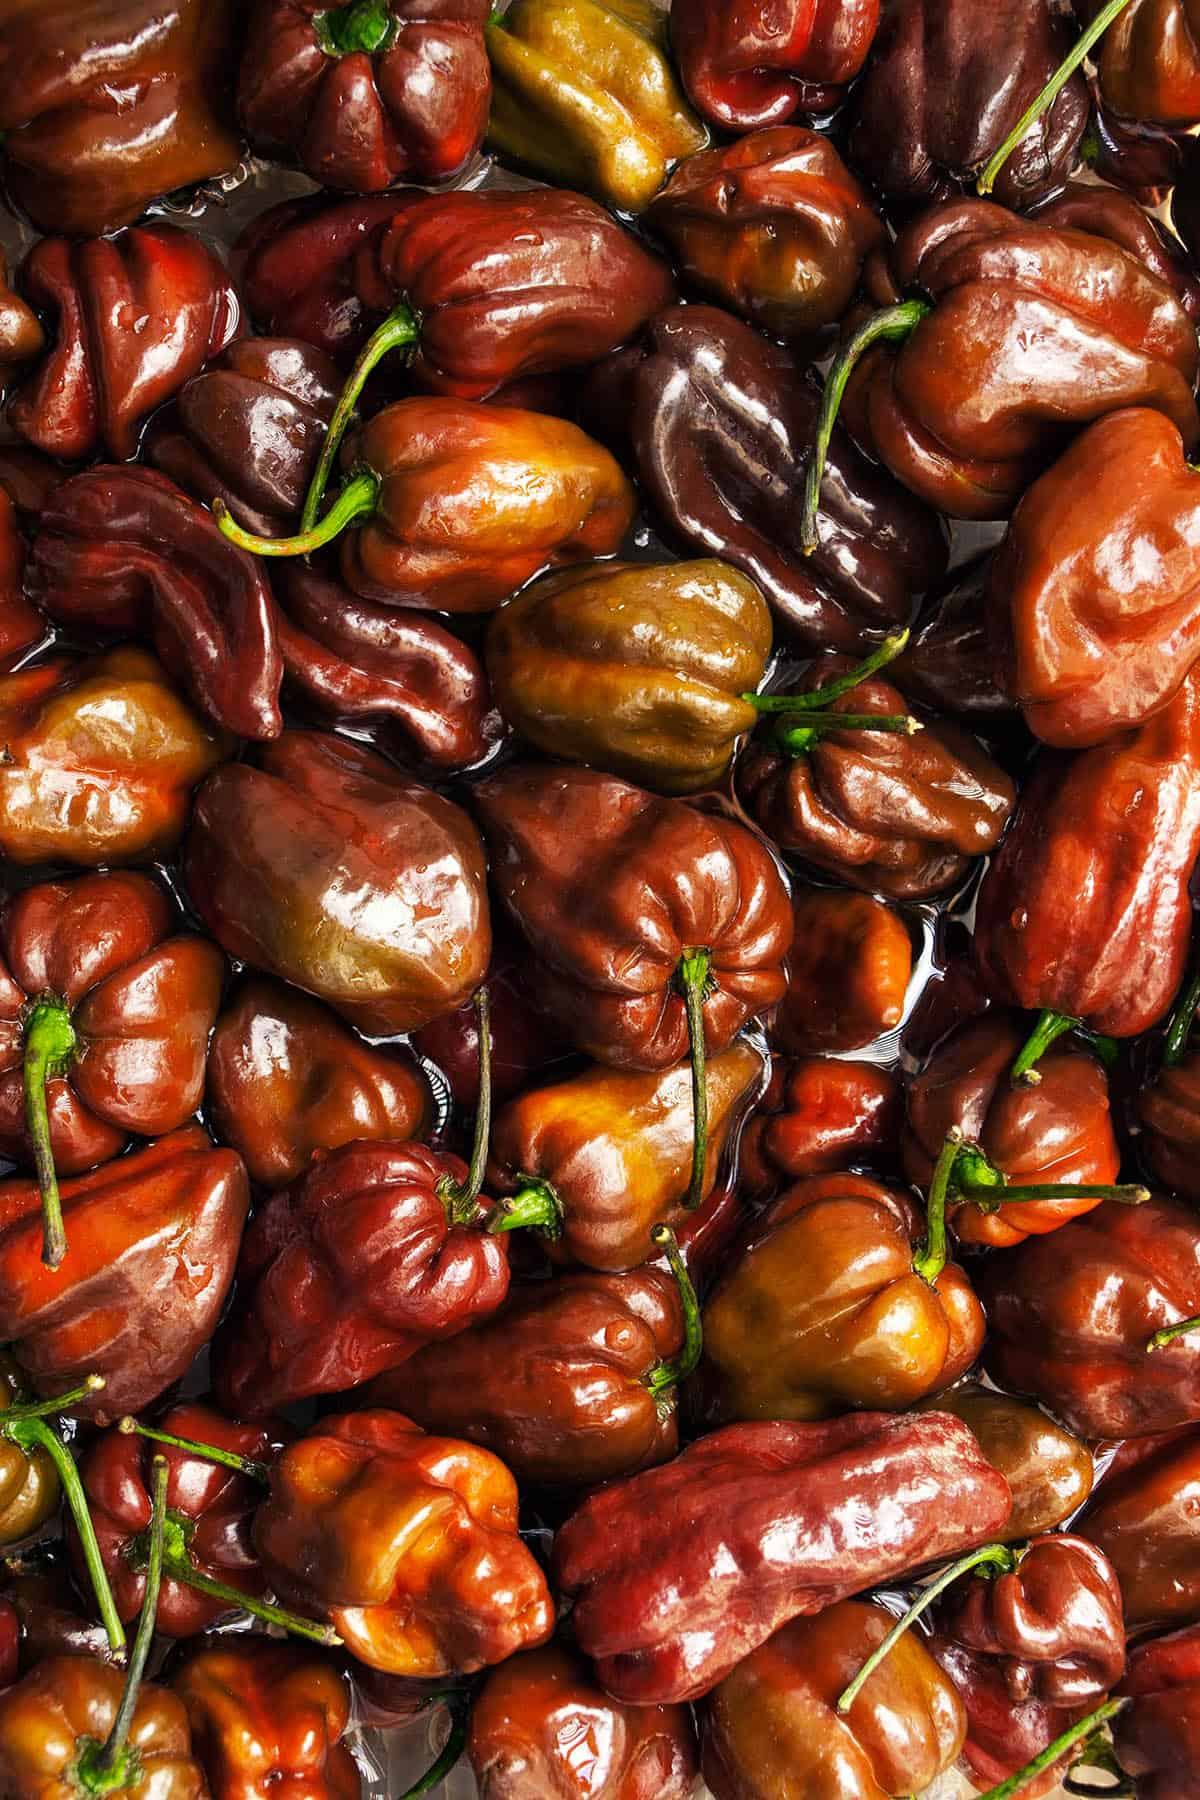 Chocolate Habanero Chili Peppers